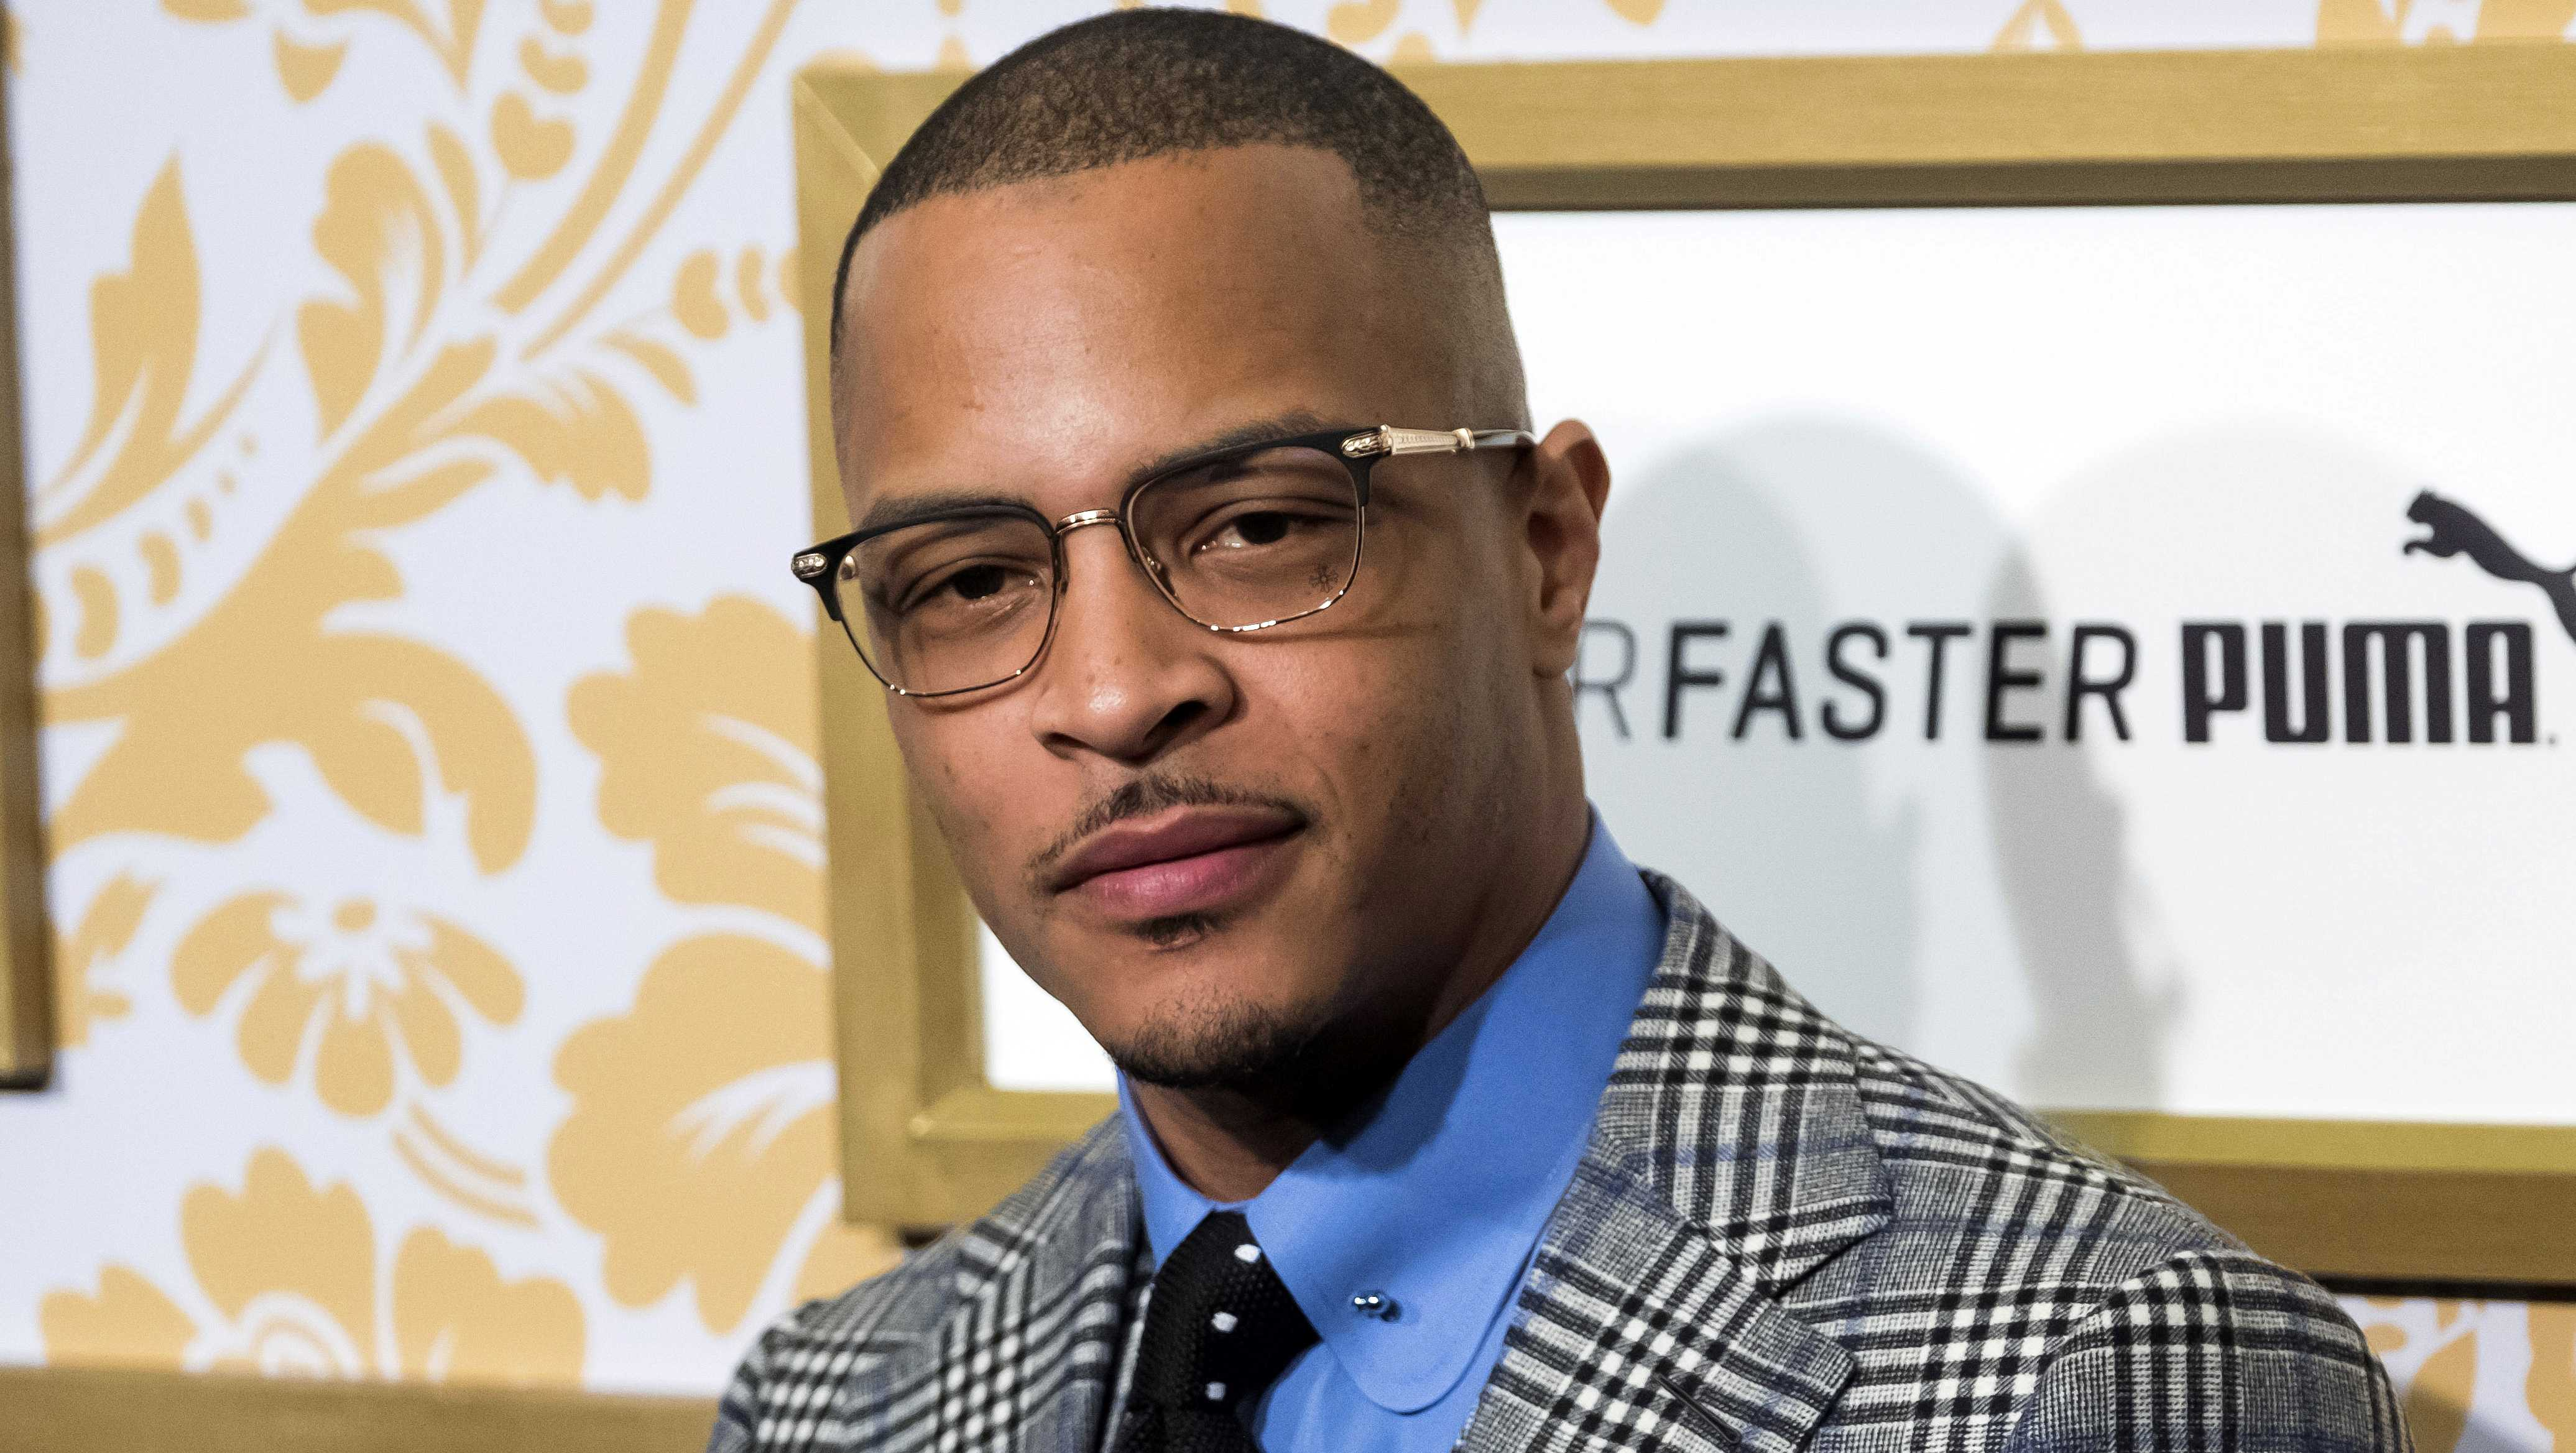 FILE - In this Jan. 27, 2018 file photo, T.I. attends the Roc Nation pre-Grammy brunch in New York. Police say rapper T.I. has been arrested for disorderly conduct and public drunkenness as he tried to enter his gated community outside Atlanta.